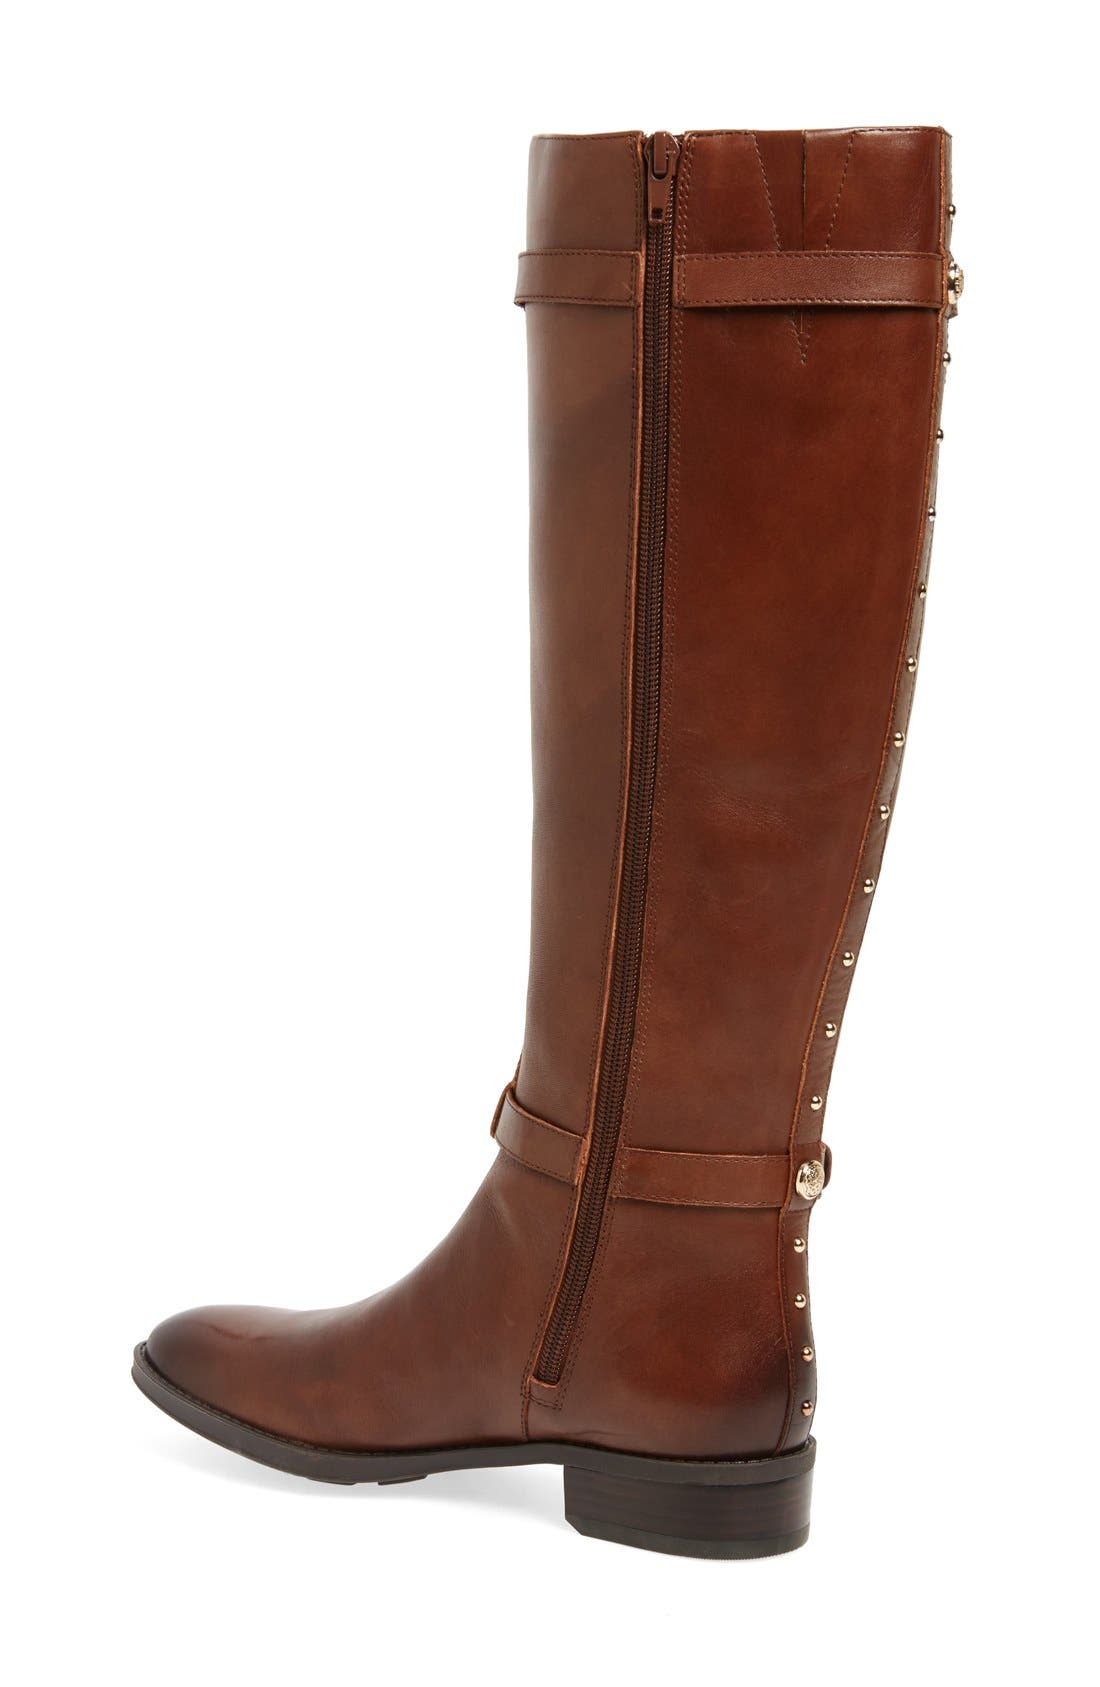 Alternate Image 2  - Vince Camuto 'Preslen' Riding Boot (Women) (Wide Calf)